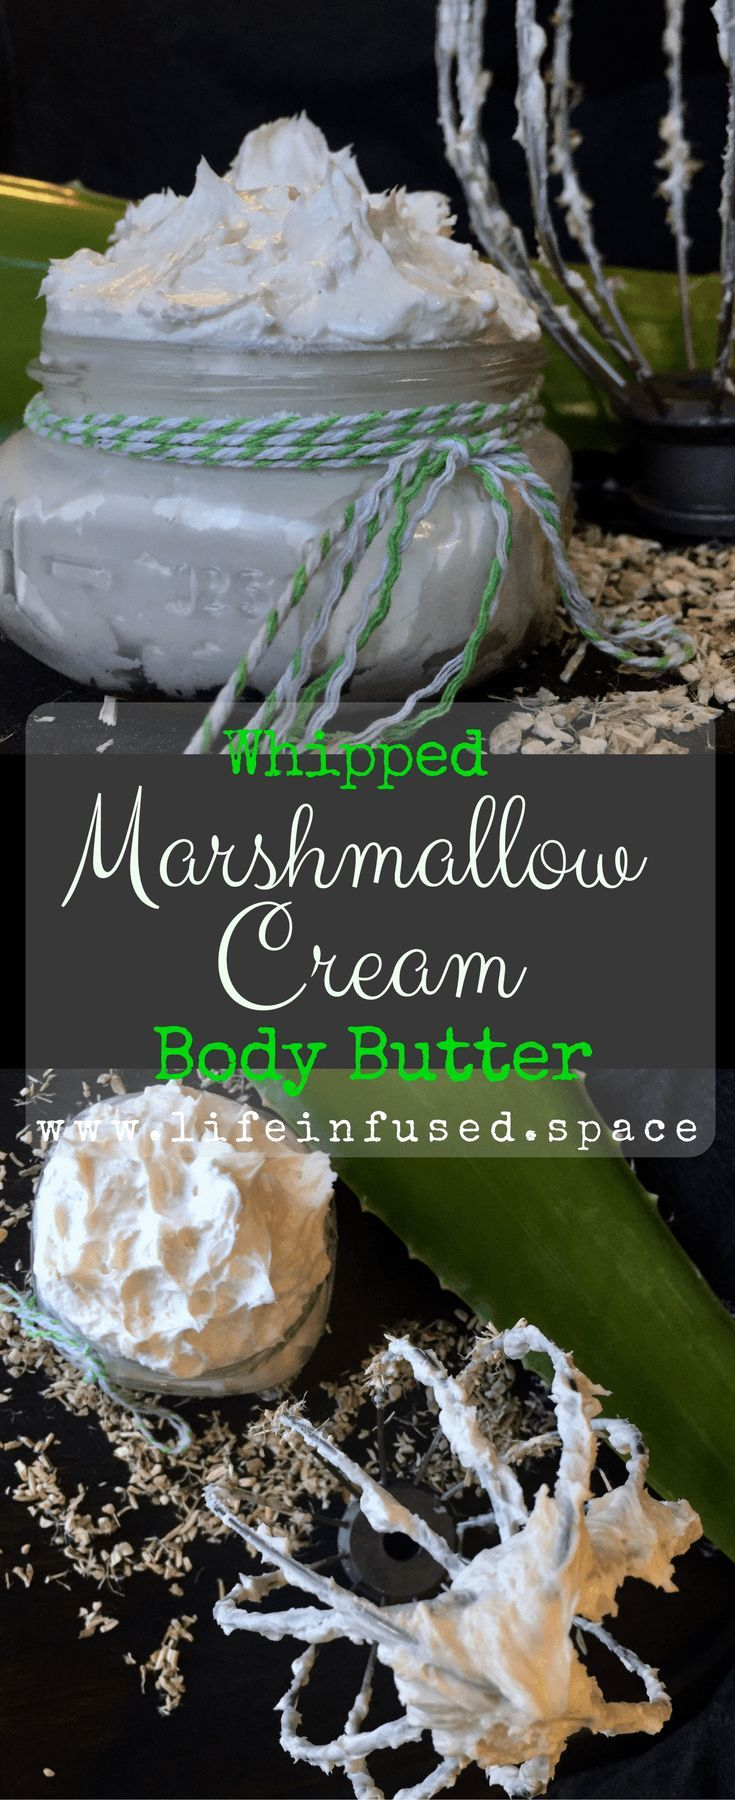 Although this marshmallow cream both looks and sounds edible, it's totally designed to quench your thirsty skin, not your appetite!  Body butters – whipped body butters to be specific, …